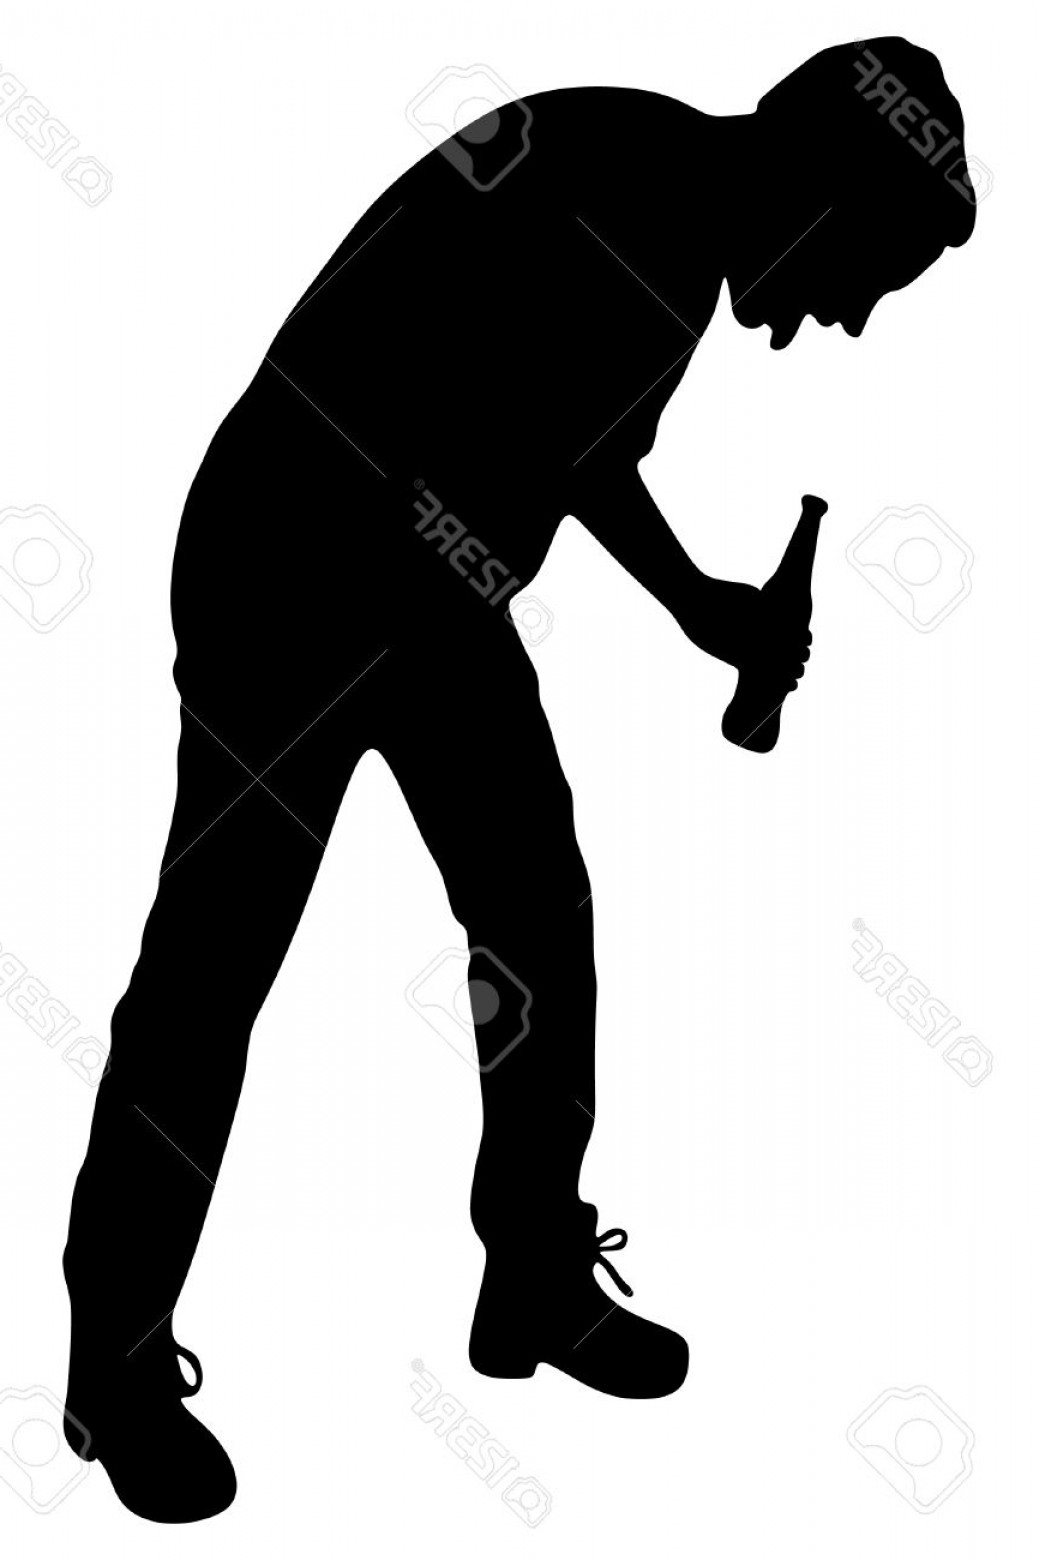 1039x1560 Photostock Vector Silhouette Of A Man With A Beer Bottle Drunk Man